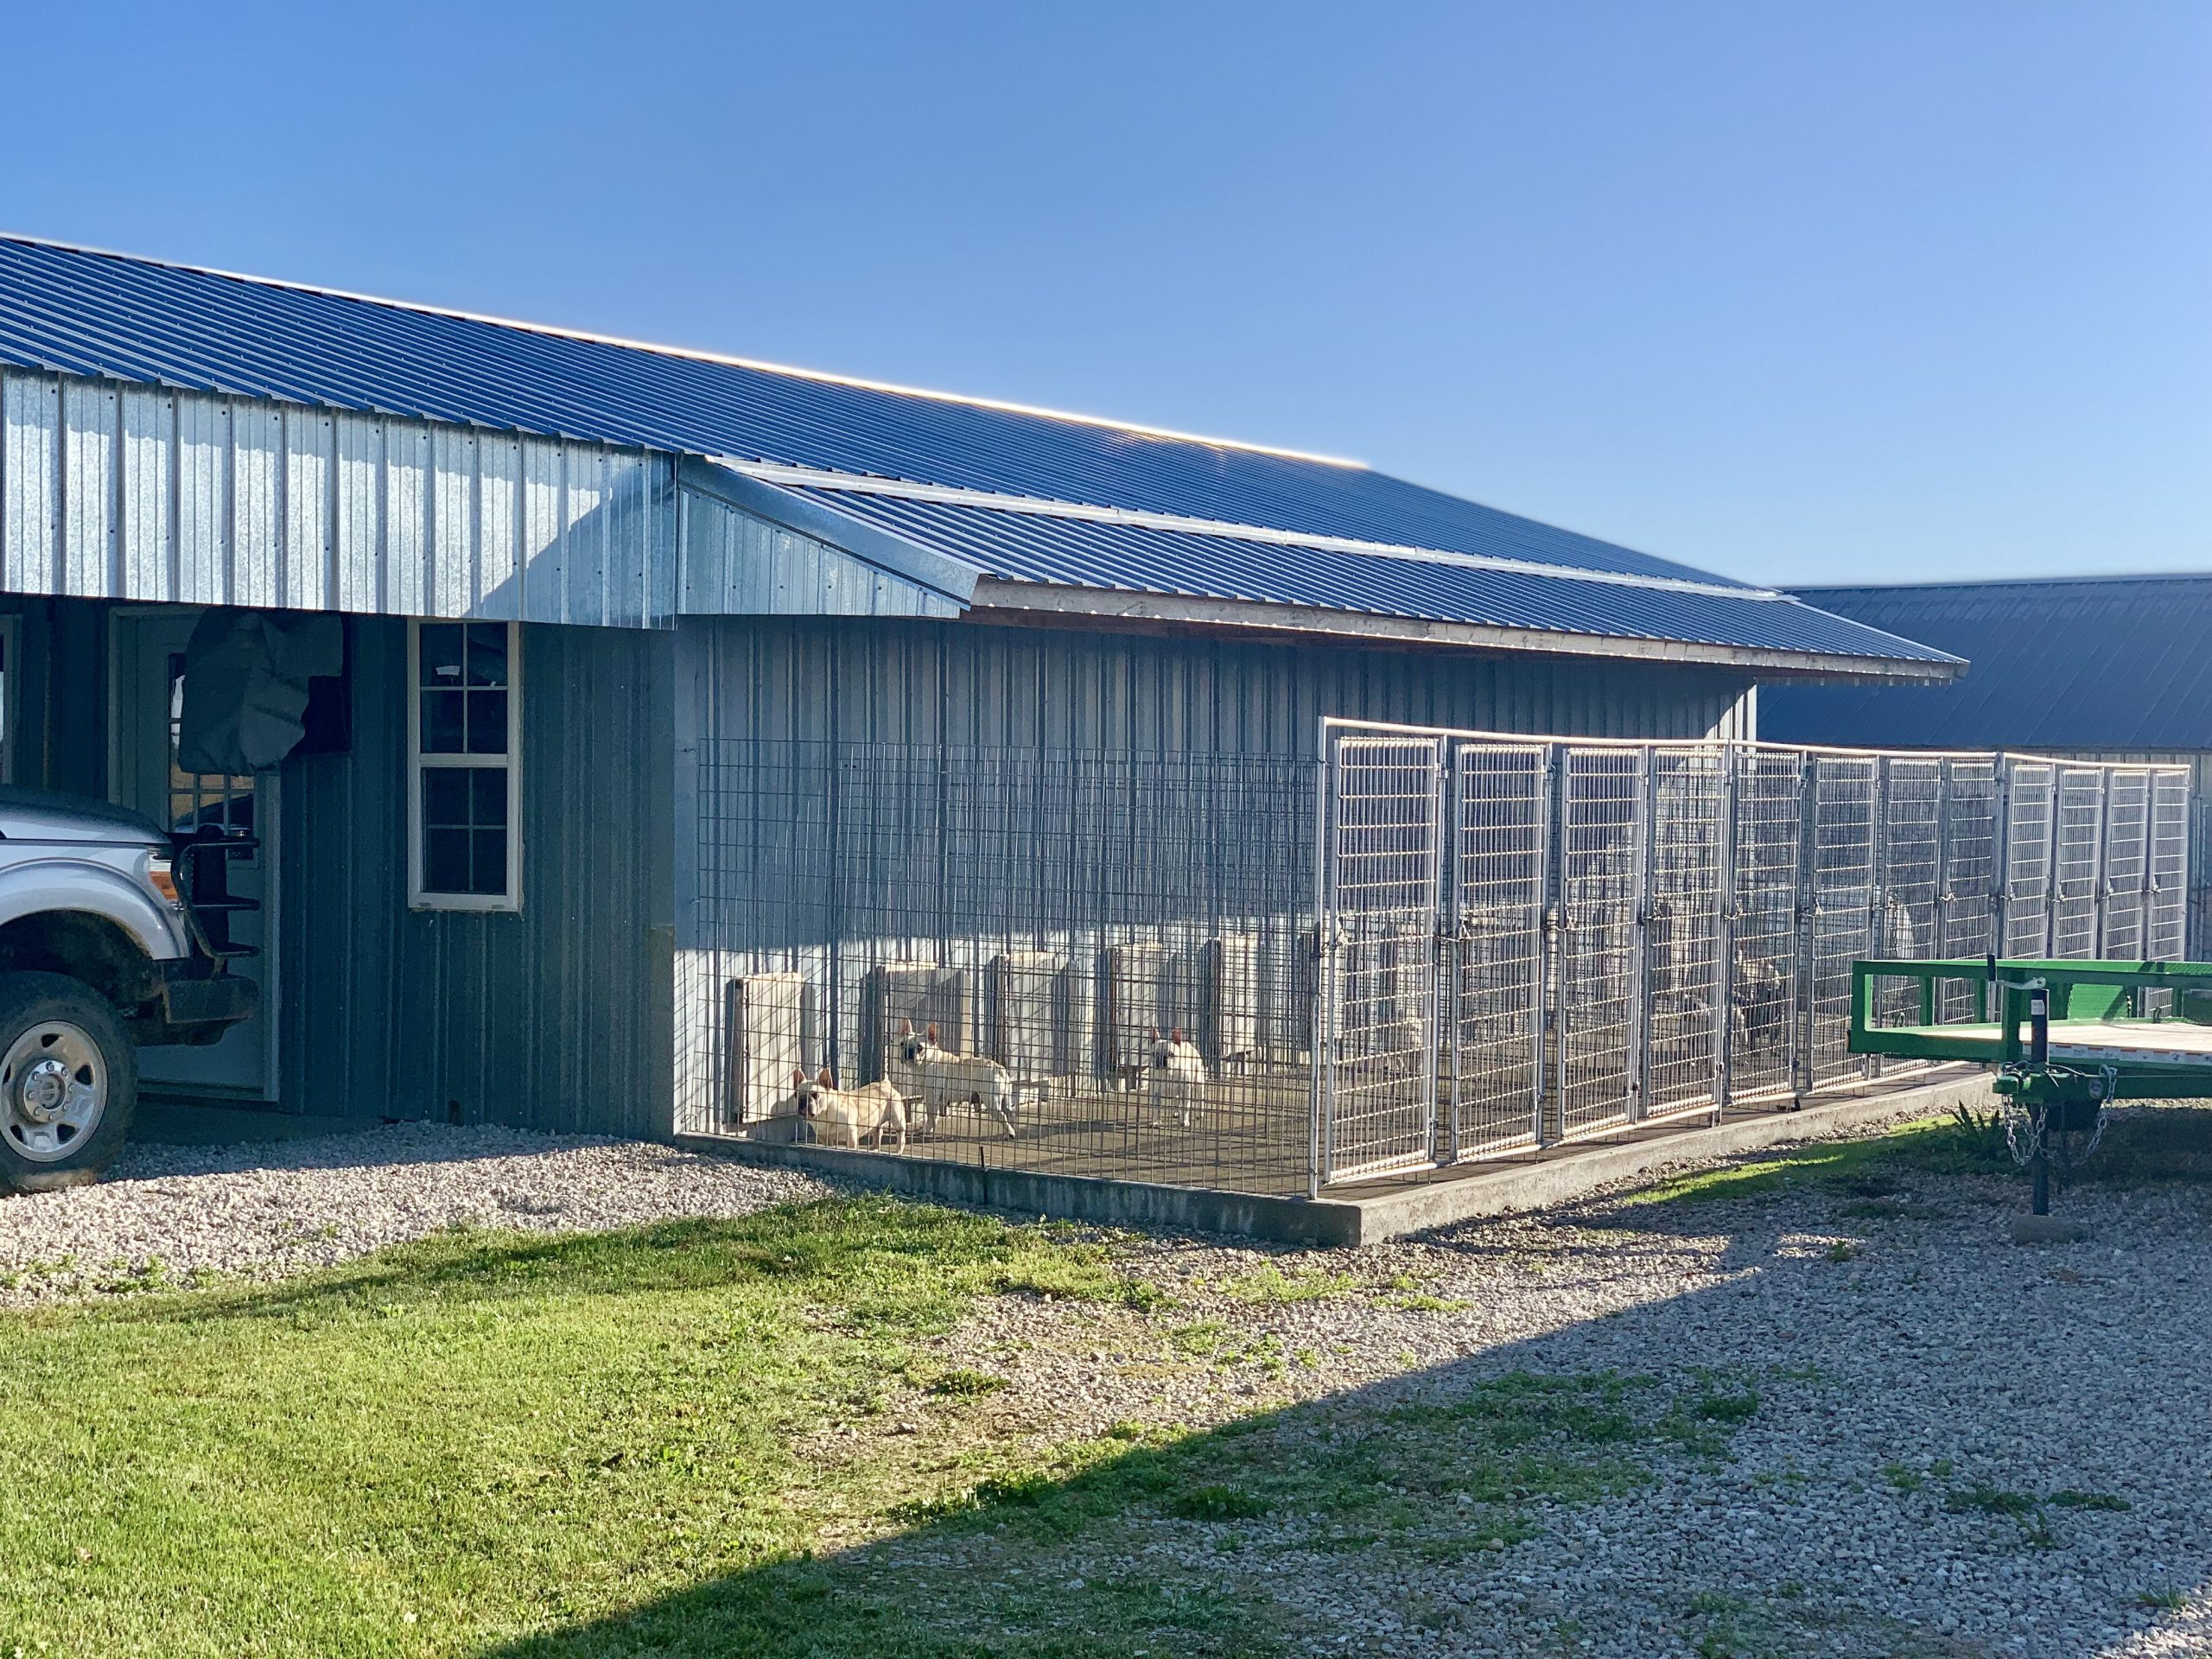 Exterior view of Kim's kennel